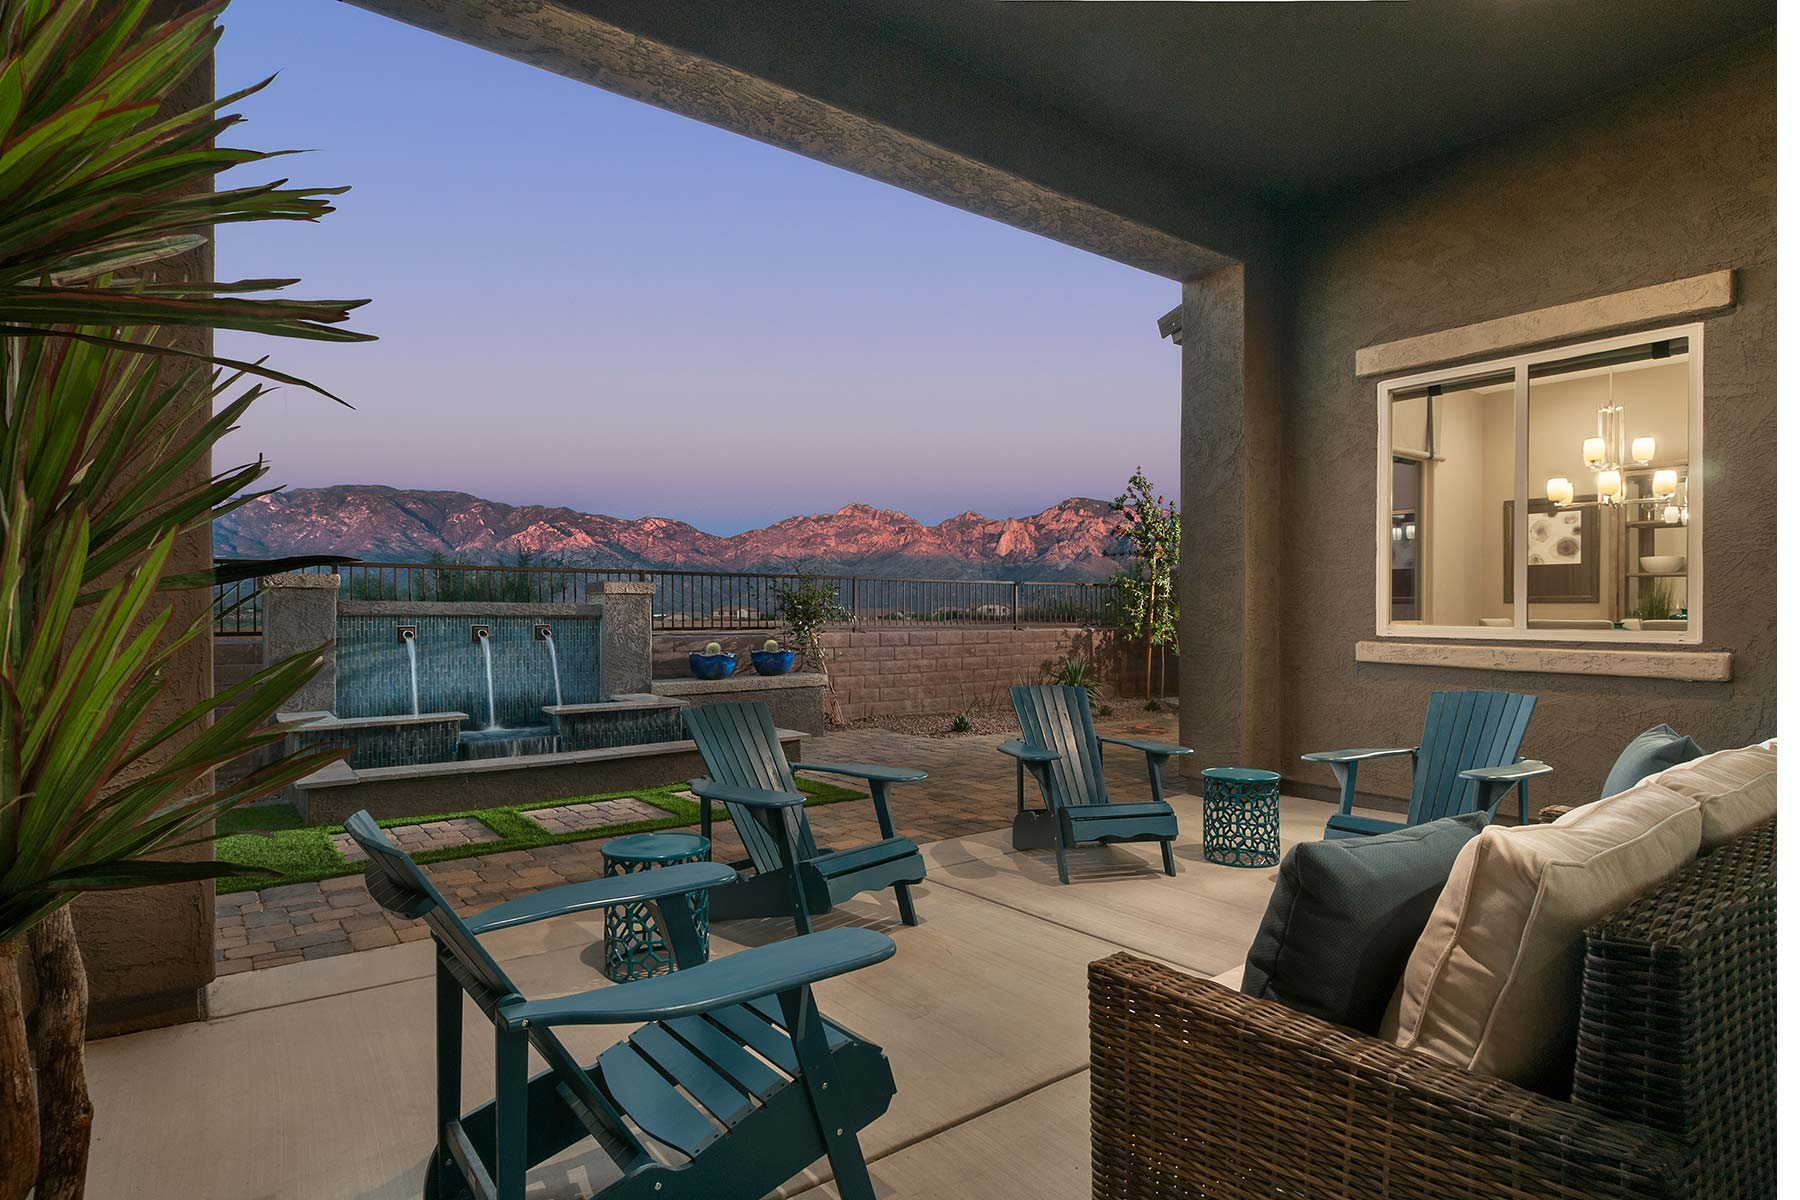 Strata Plan Patio at Alterra at Vistoso Trails in Oro Valley Arizona by Mattamy Homes